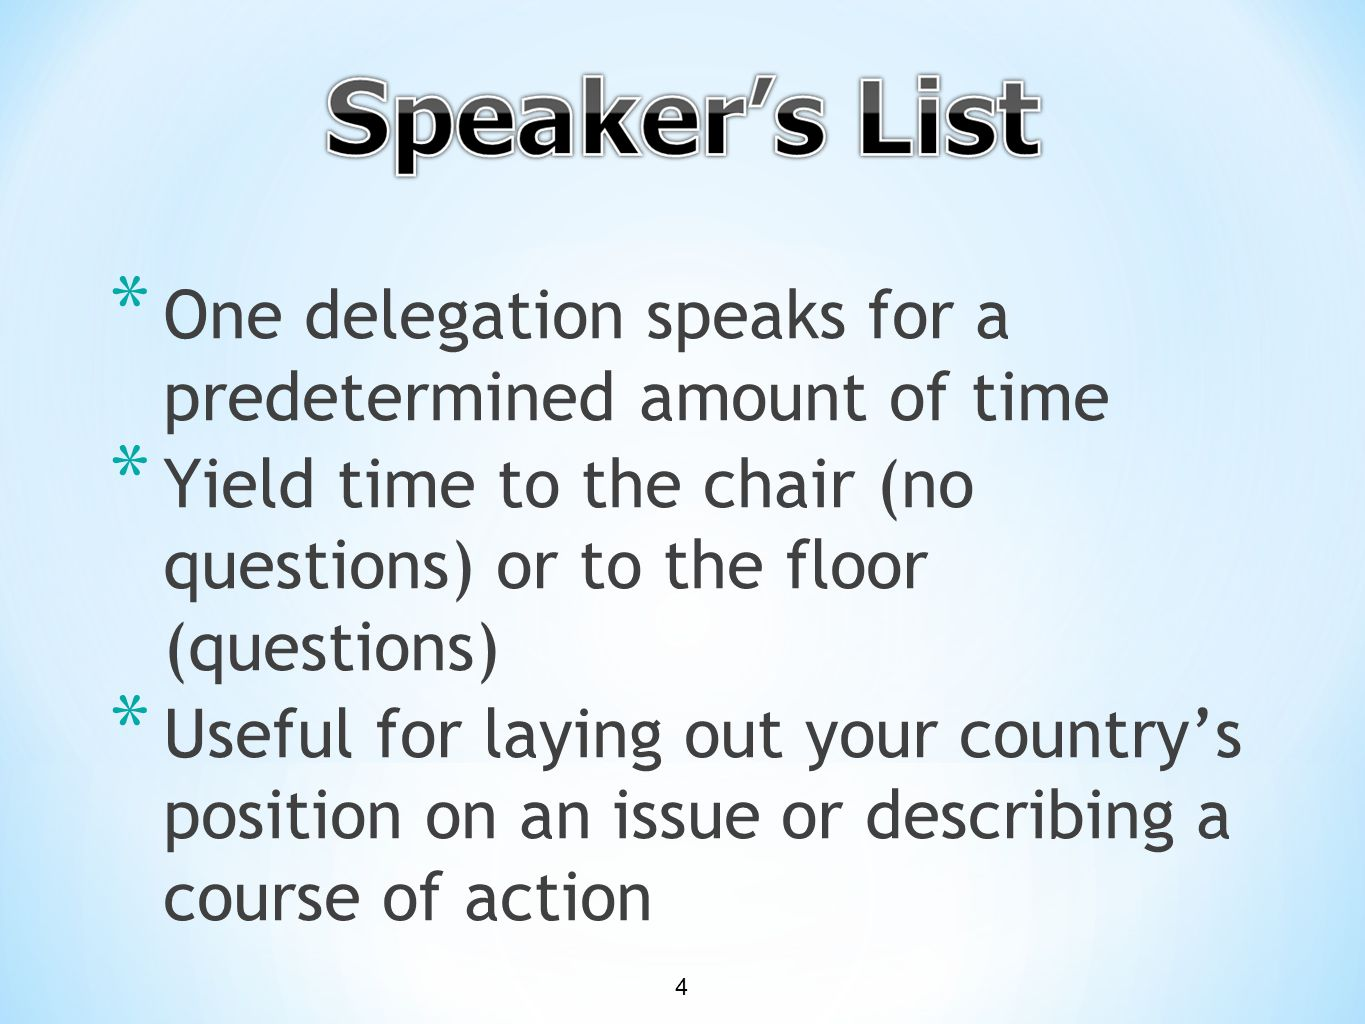 * One delegation speaks for a predetermined amount of time * Yield time to the chair (no questions) or to the floor (questions) * Useful for laying out your country's position on an issue or describing a course of action 4